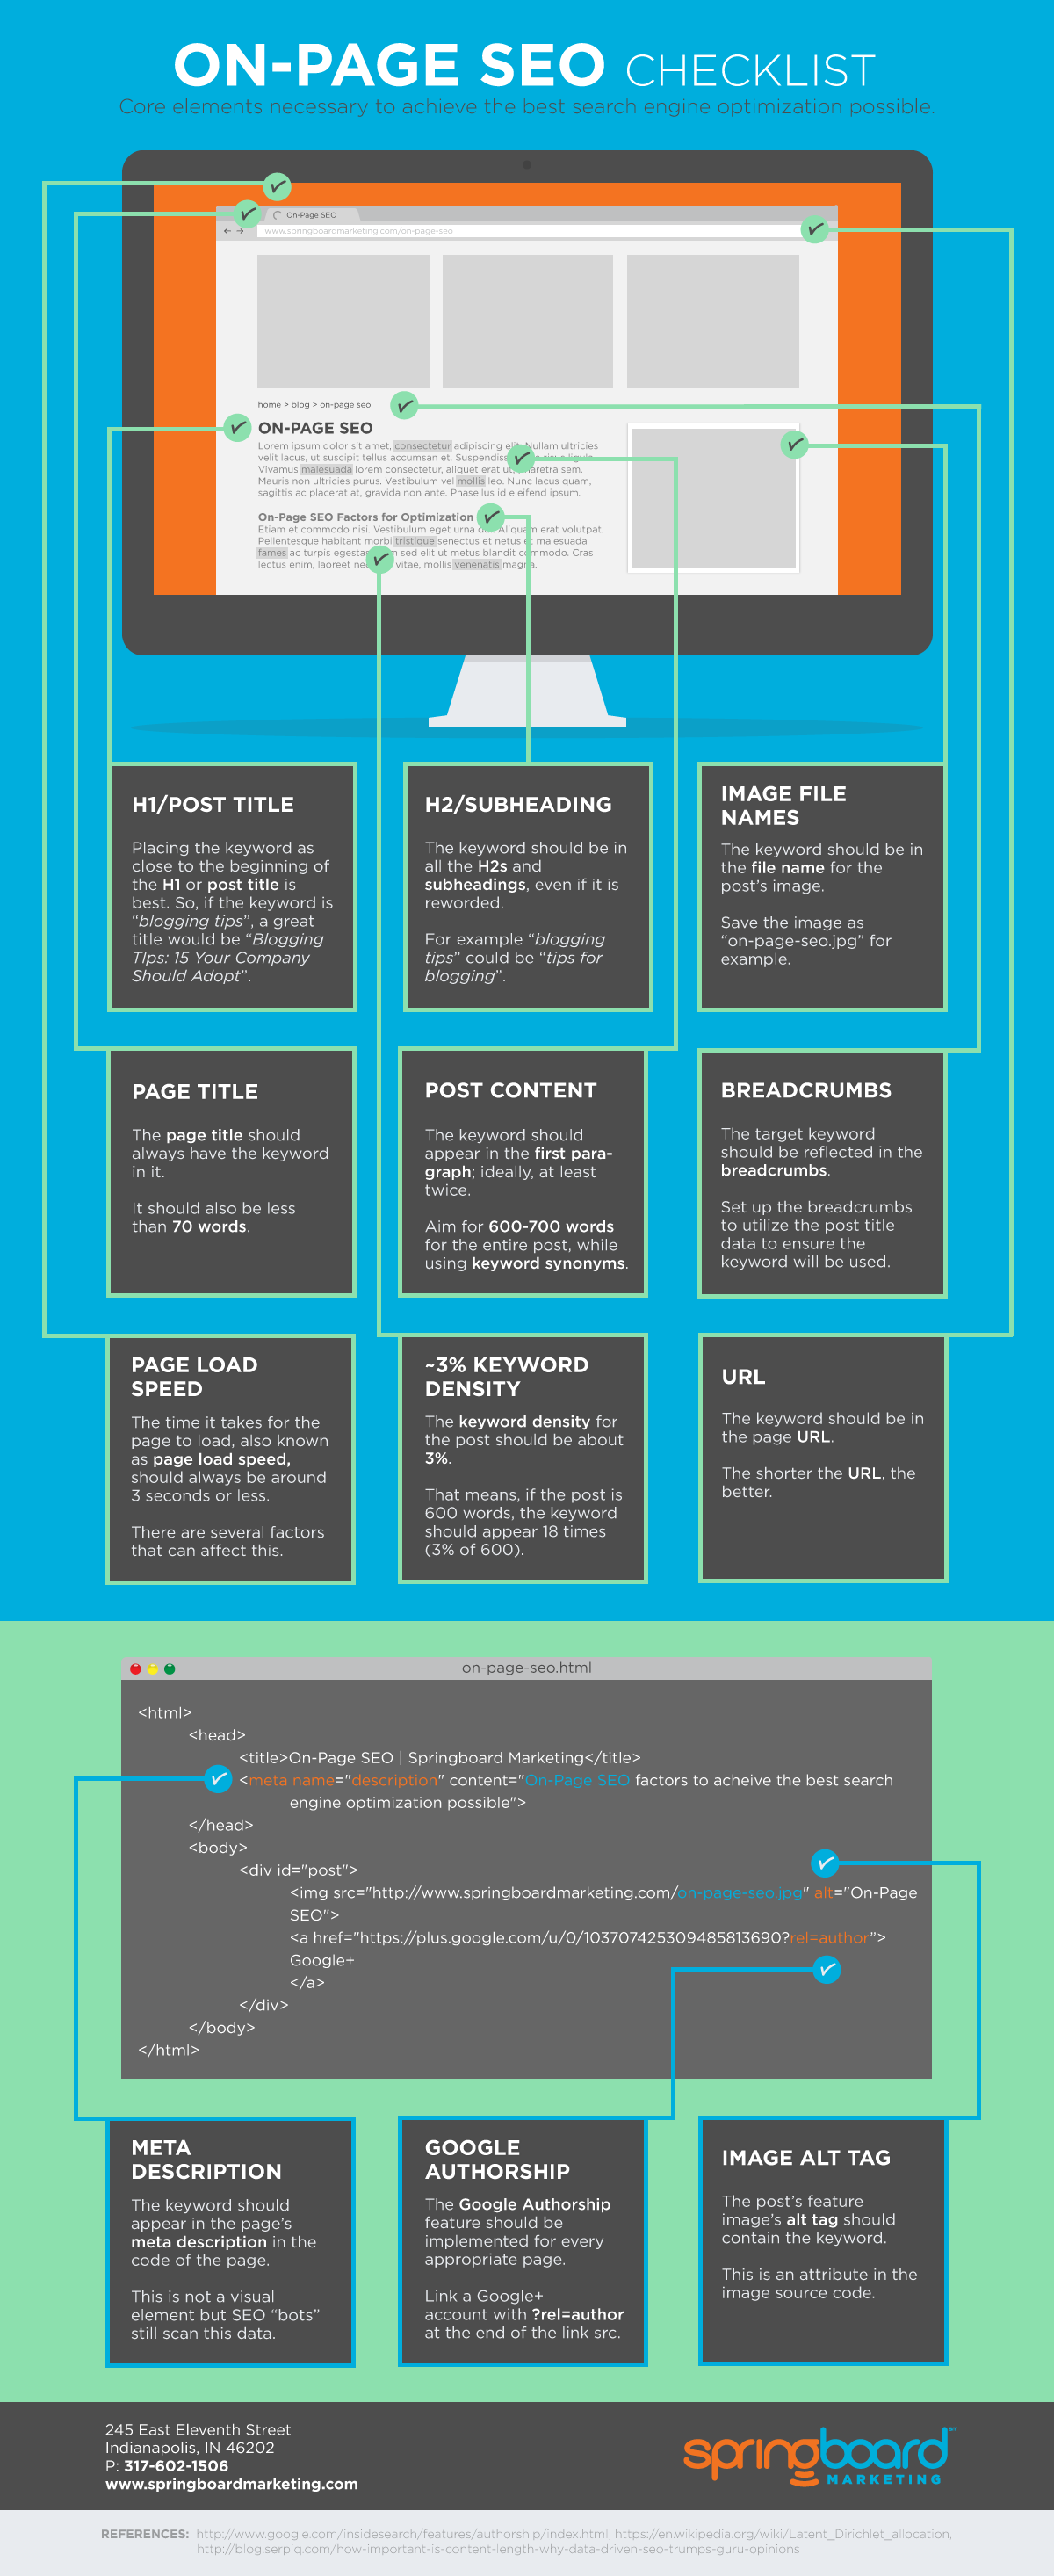 On-page SEO Checklist - #Infographic